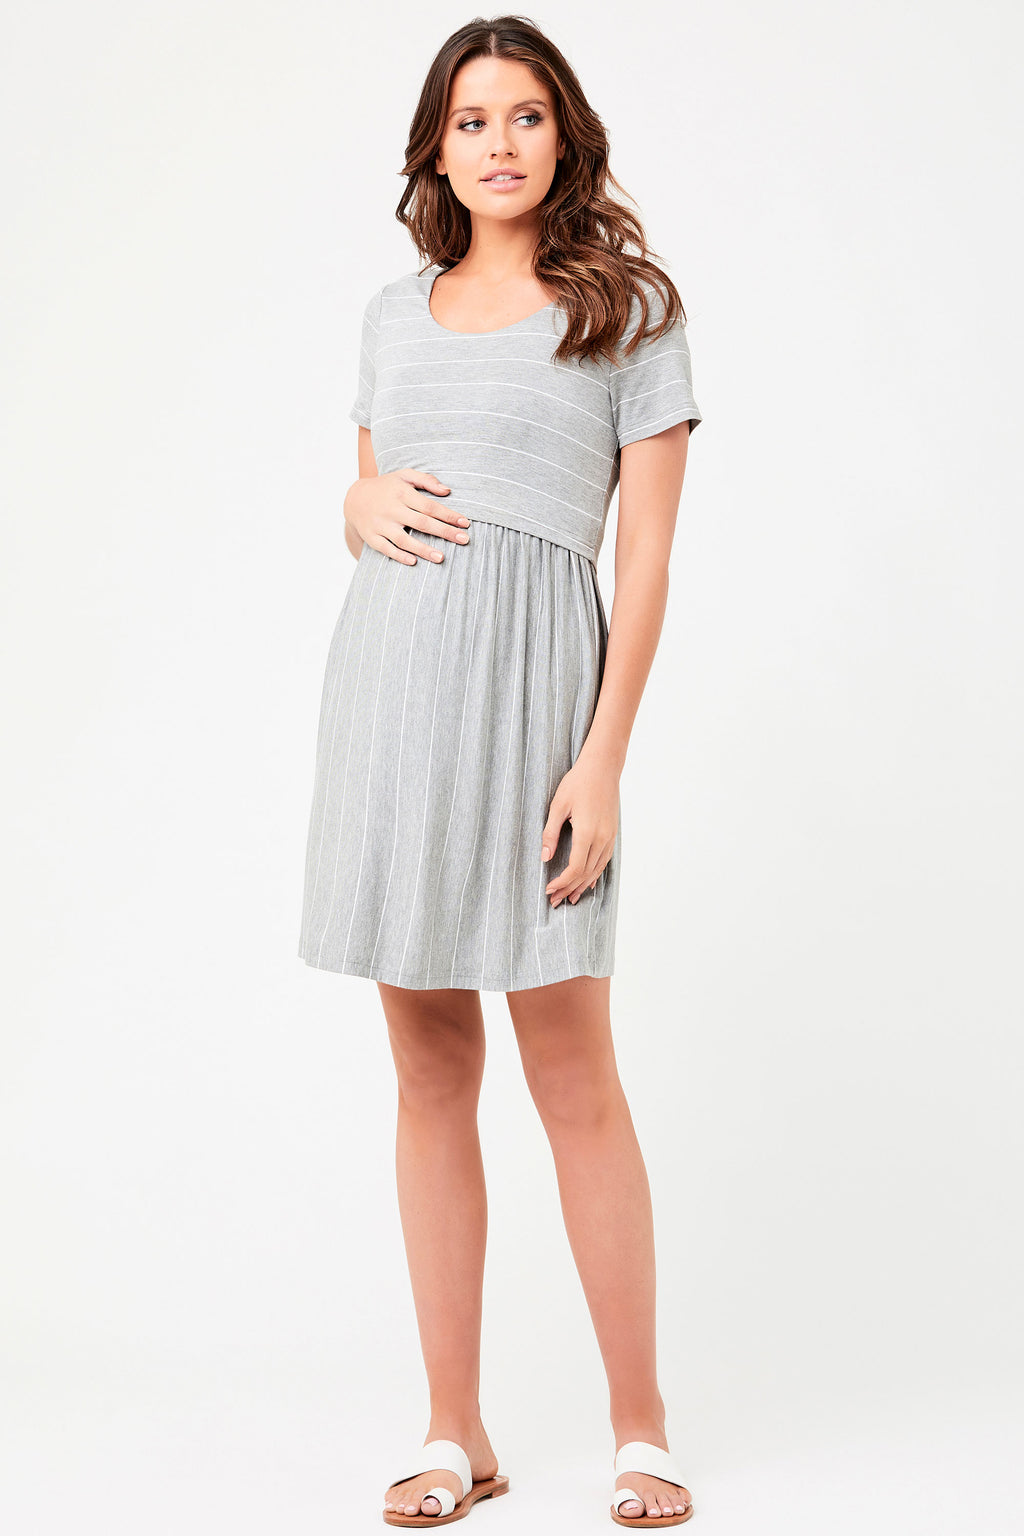 Ripe Cirilla Crop Top Maternity Nursing Dress Silver - Seven Women Maternity